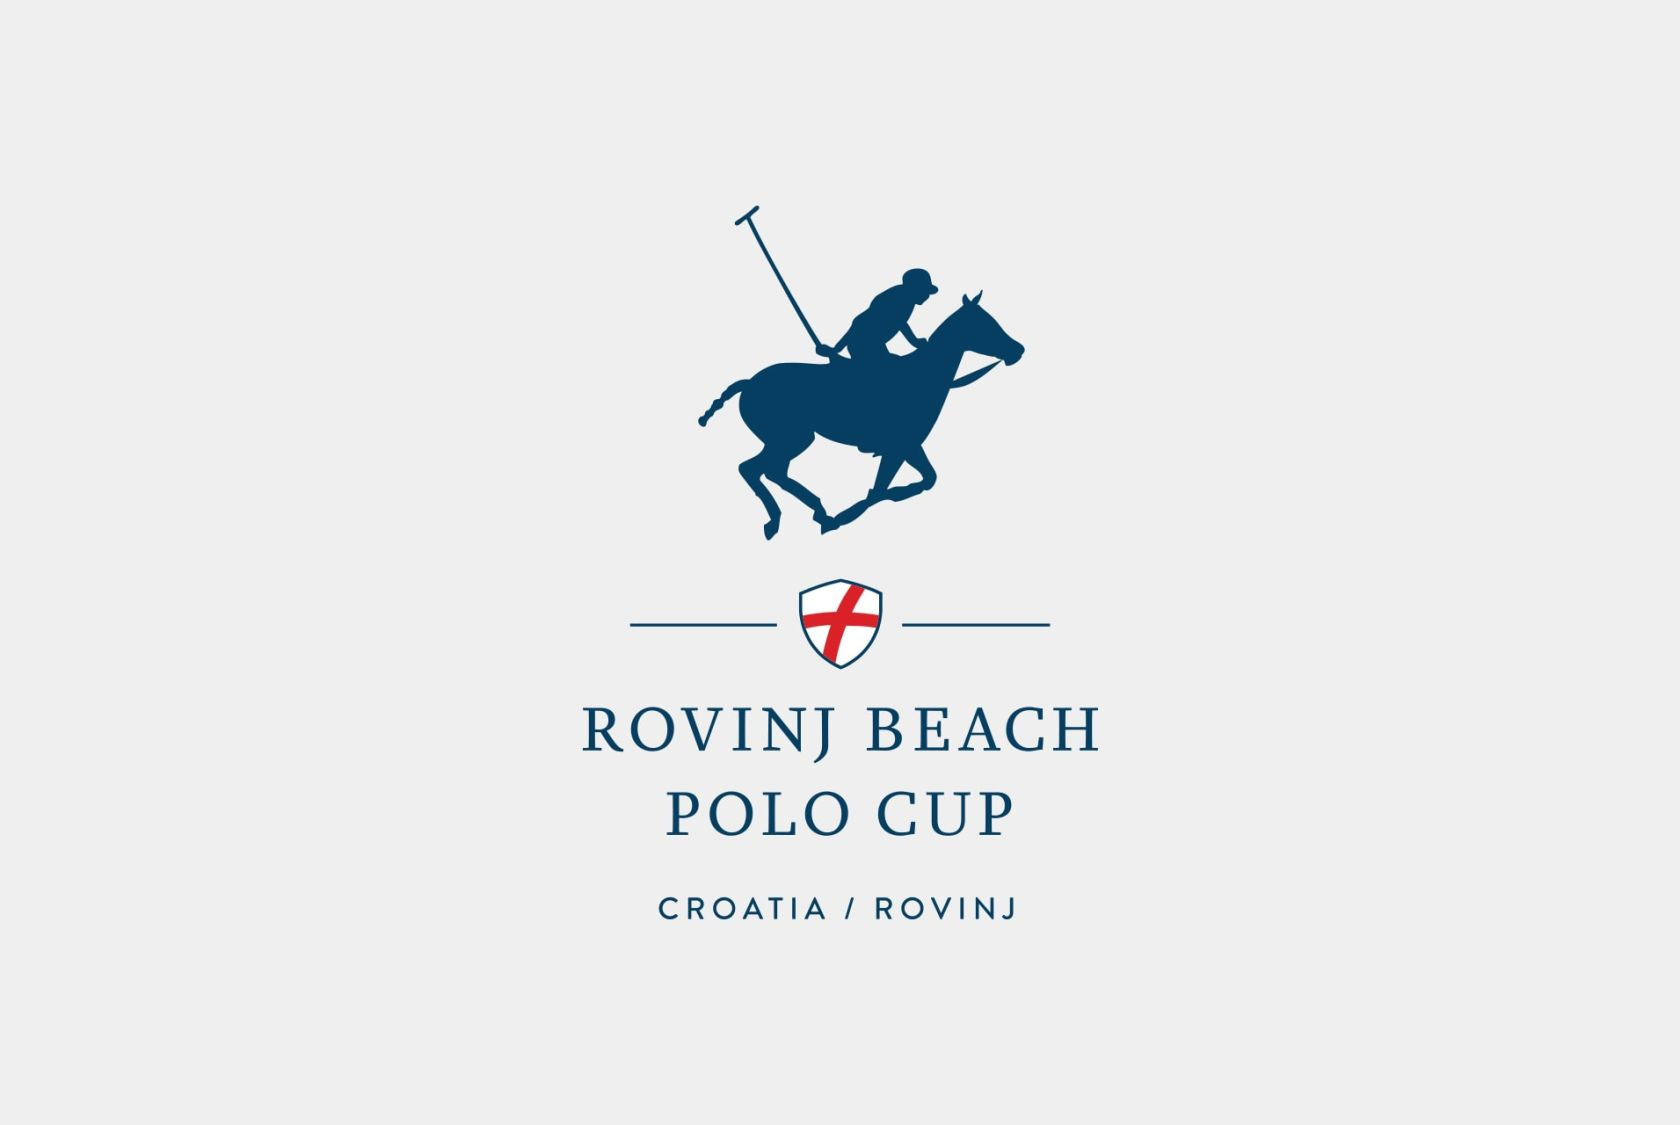 Rovinj Beach Polo